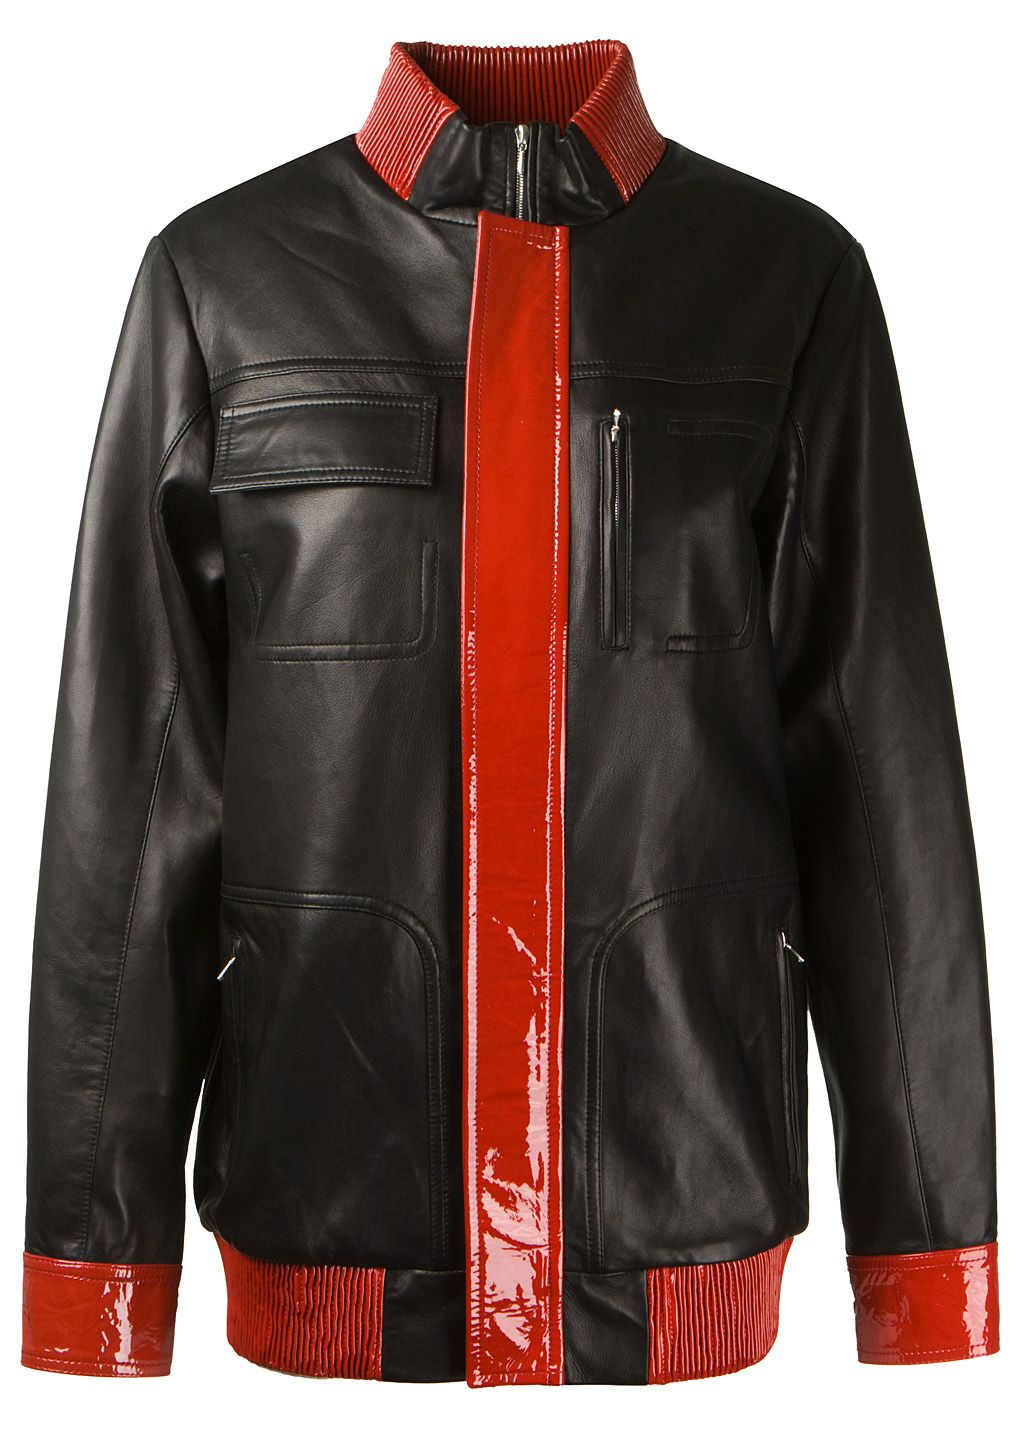 Anthony Vaccarello Jackets :: Anthony Vaccarello patent and nappa leather jacket | Montaigne Market